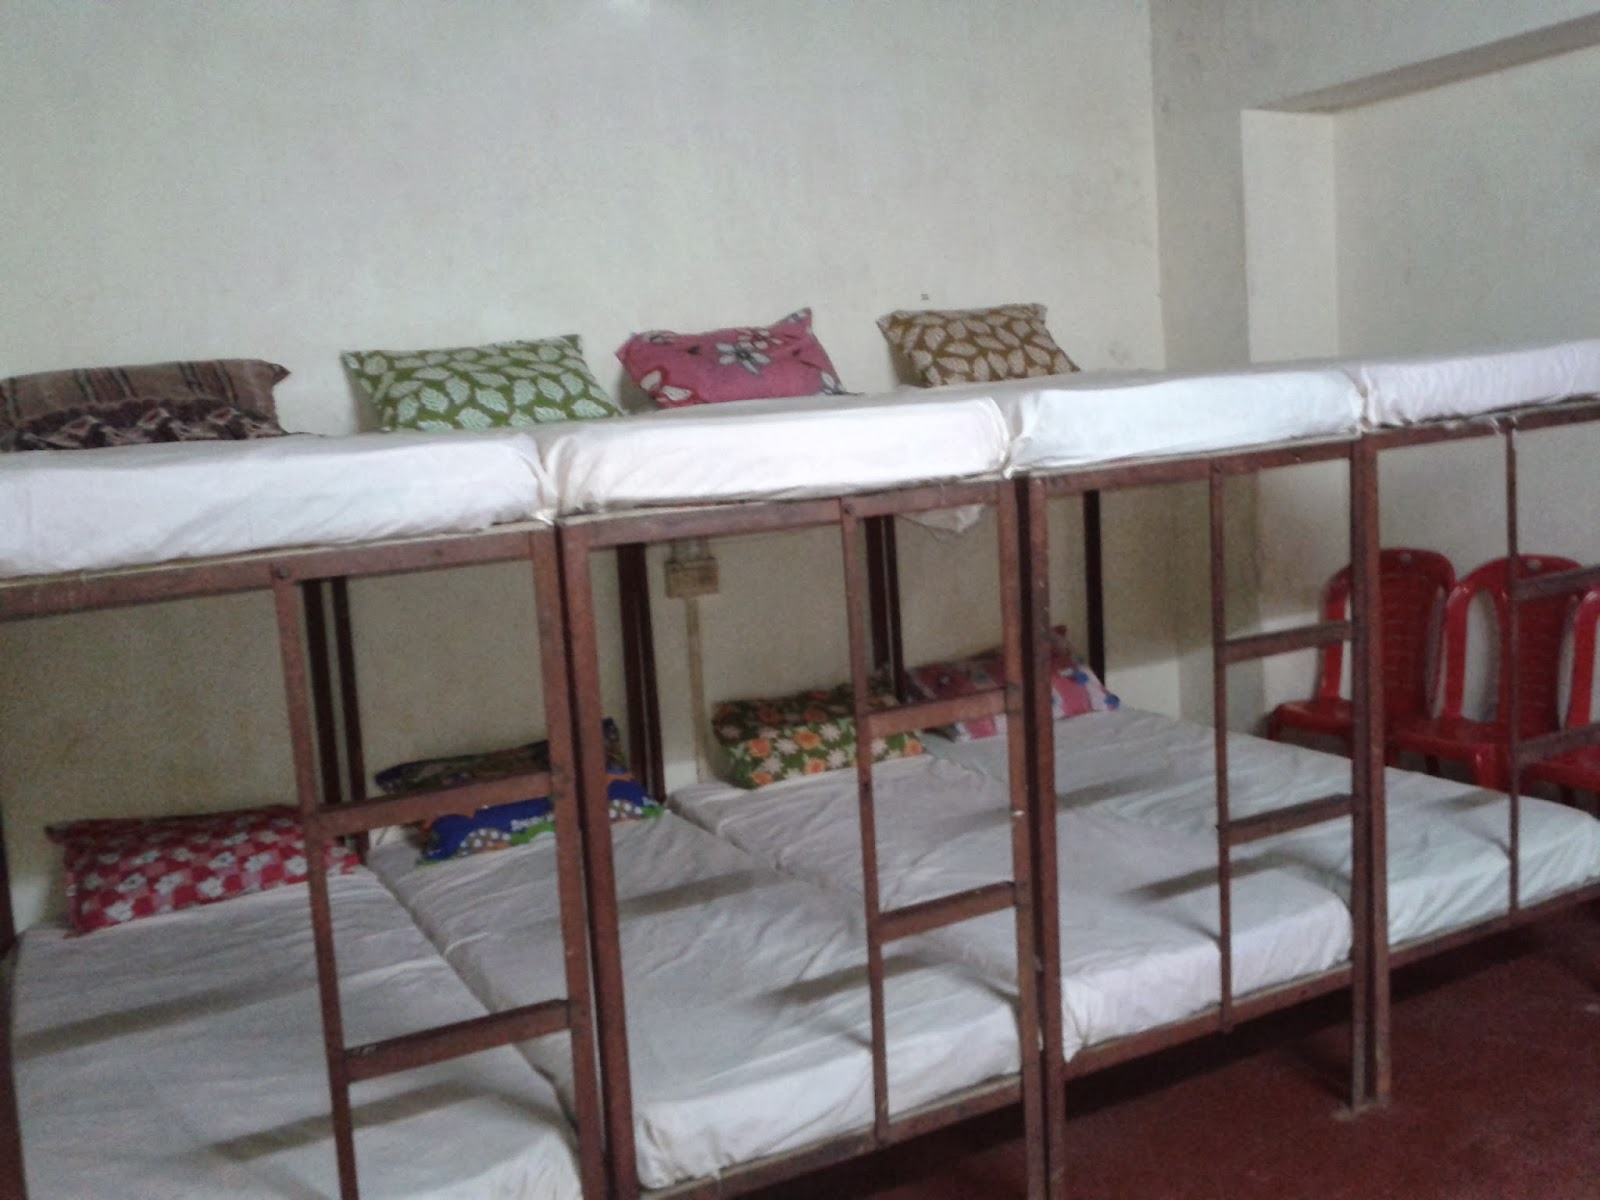 munnar dormitory accommodation,